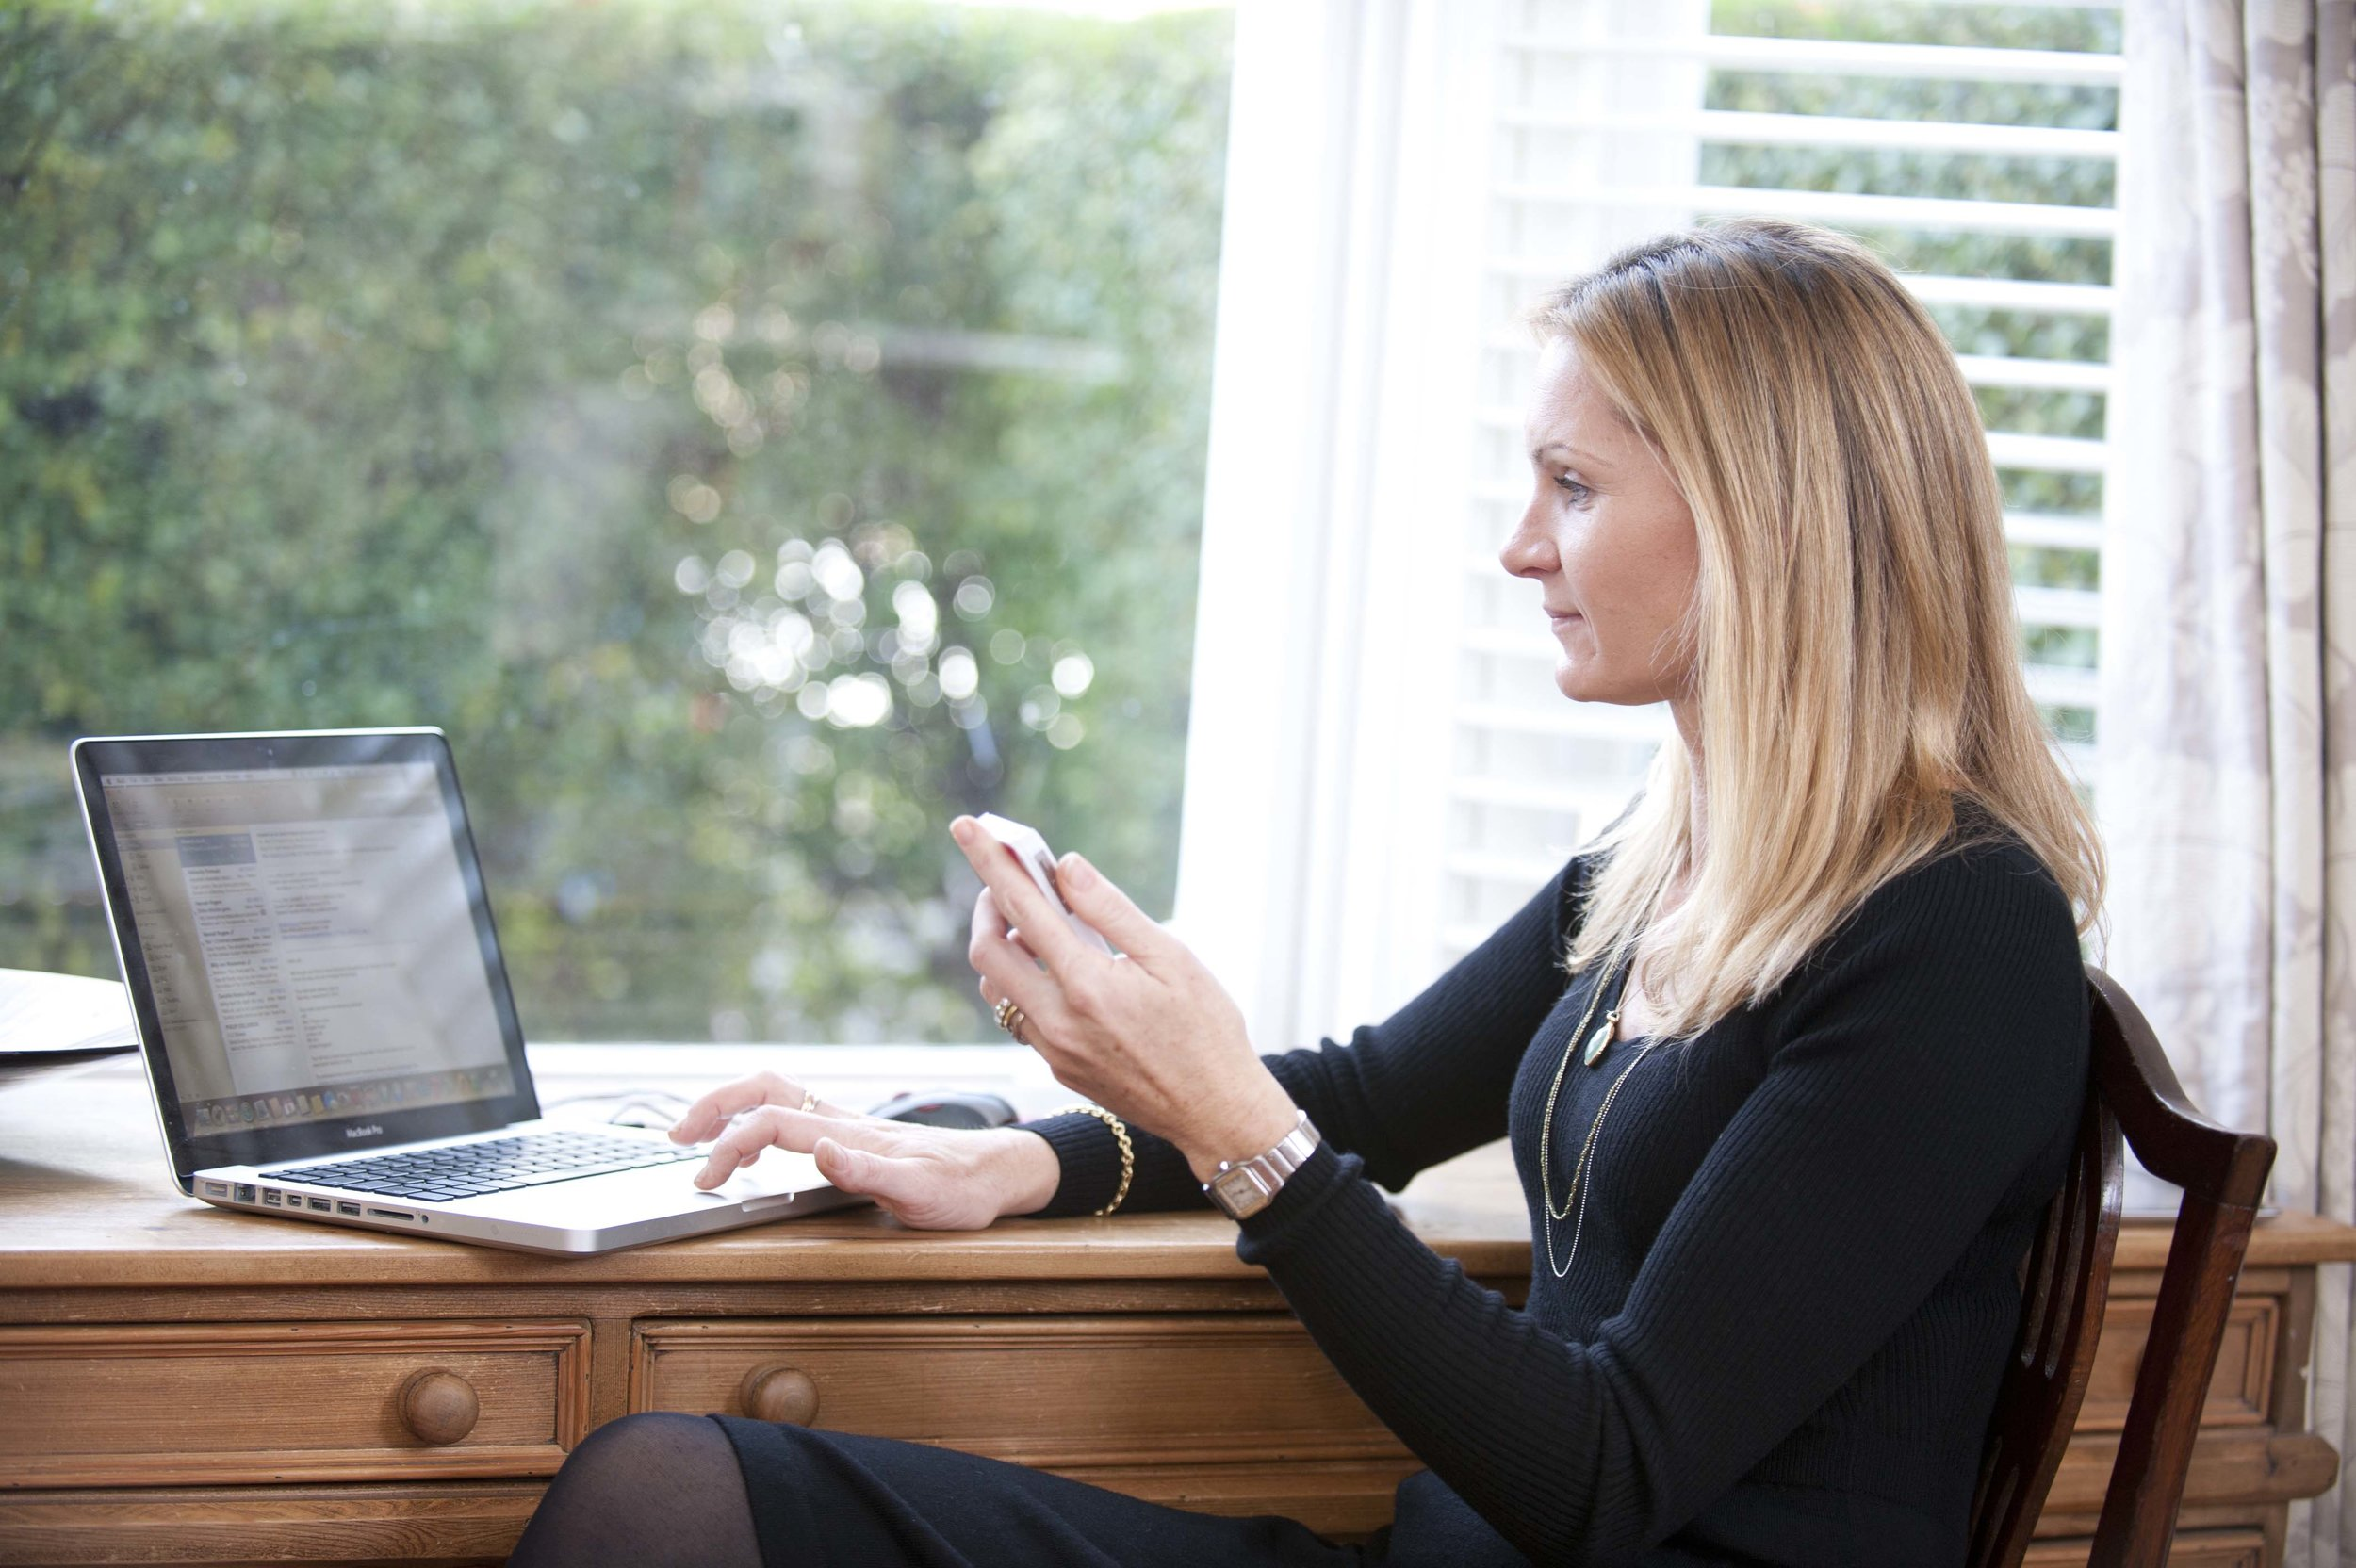 Marketing portrait of a woman using a mac and a mobile device